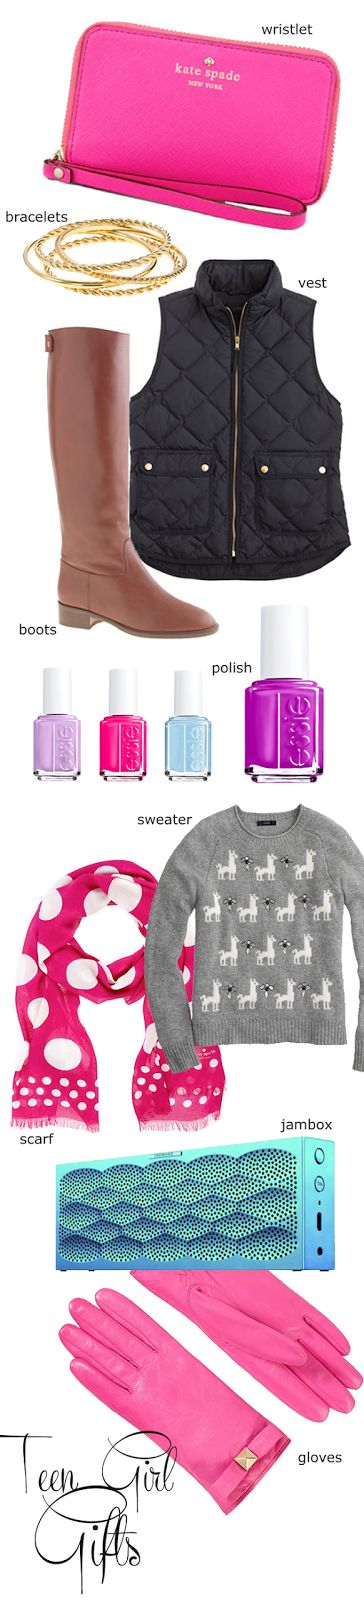 The Pink Pagoda: Guest Post || TEEN GIRL GIFTS